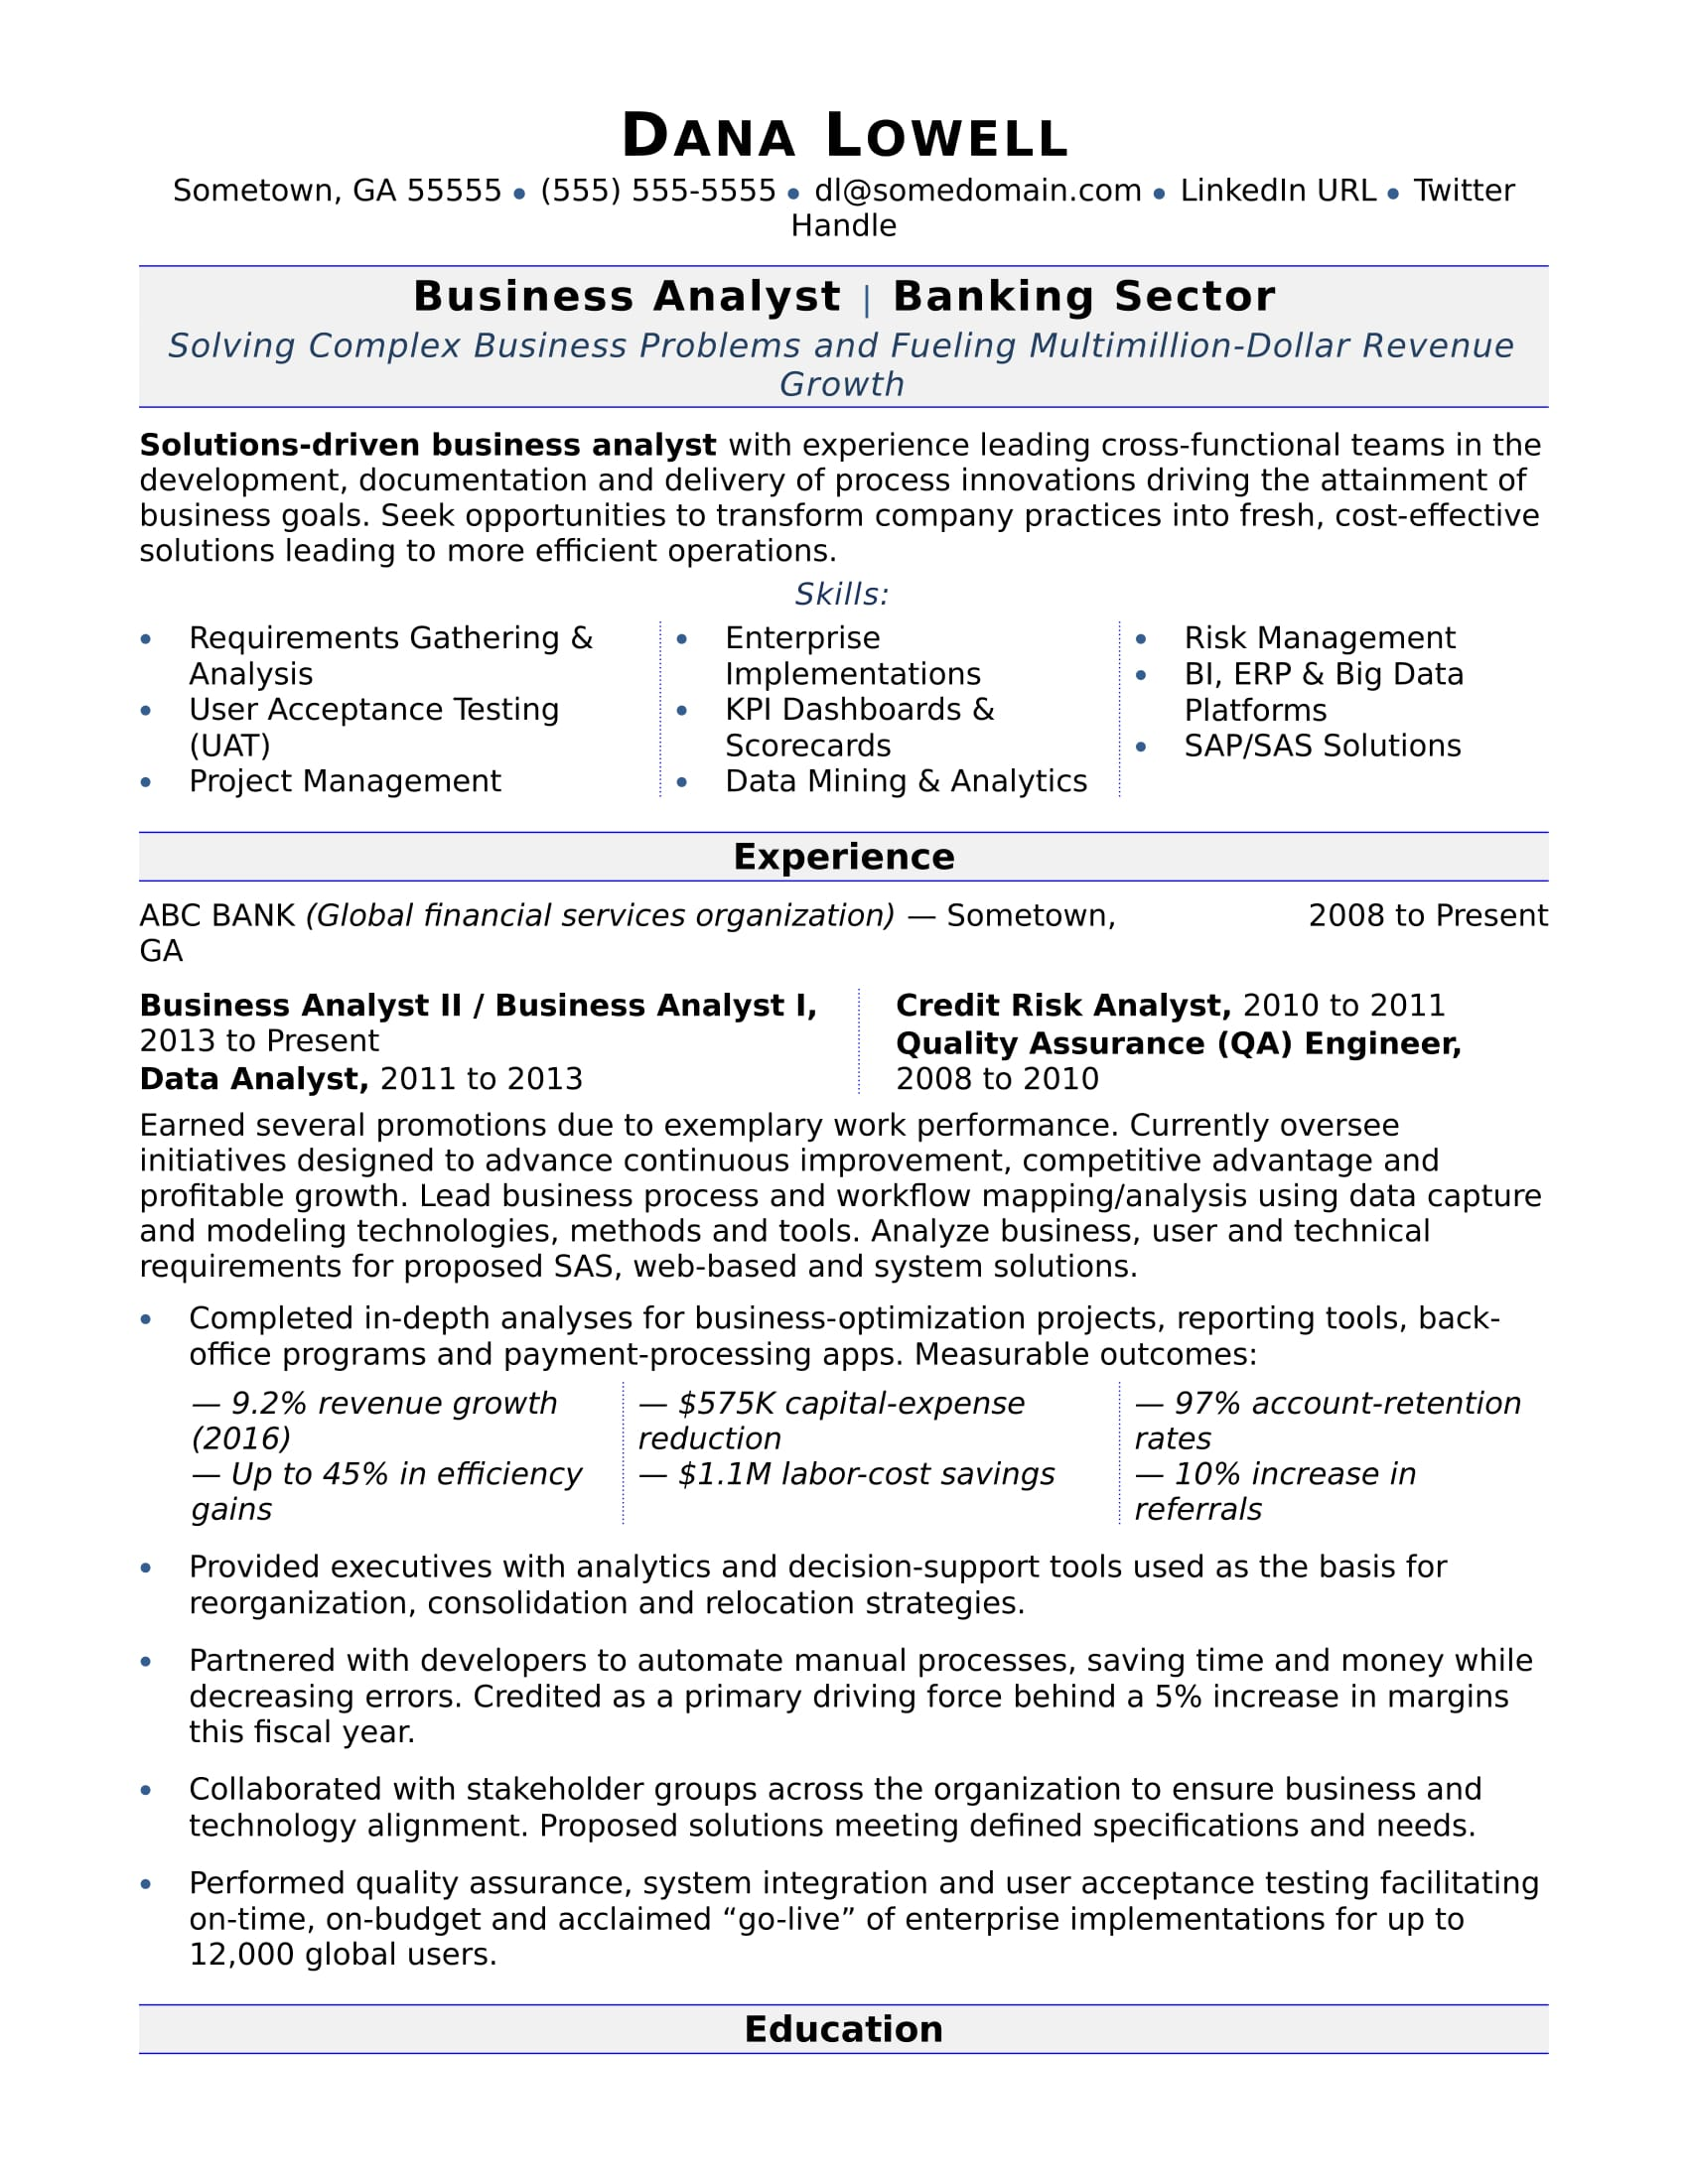 business analyst resume sample monster with testing experience businessanalyst format Resume Business Analyst Resume With Testing Experience